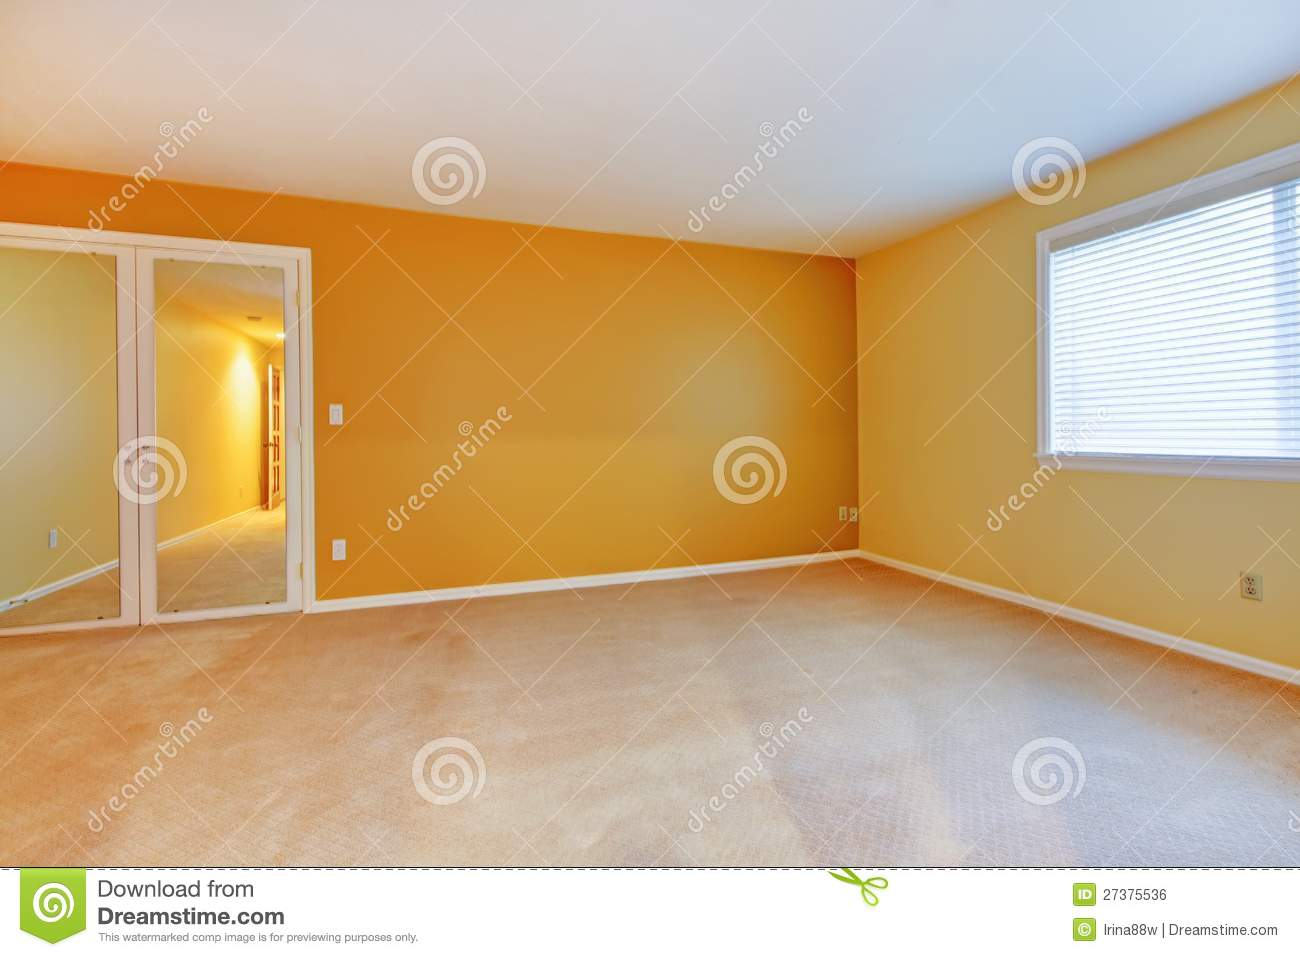 Empty Room With Yellow Golden Walls And Mirror Stock Photo Image 27375536